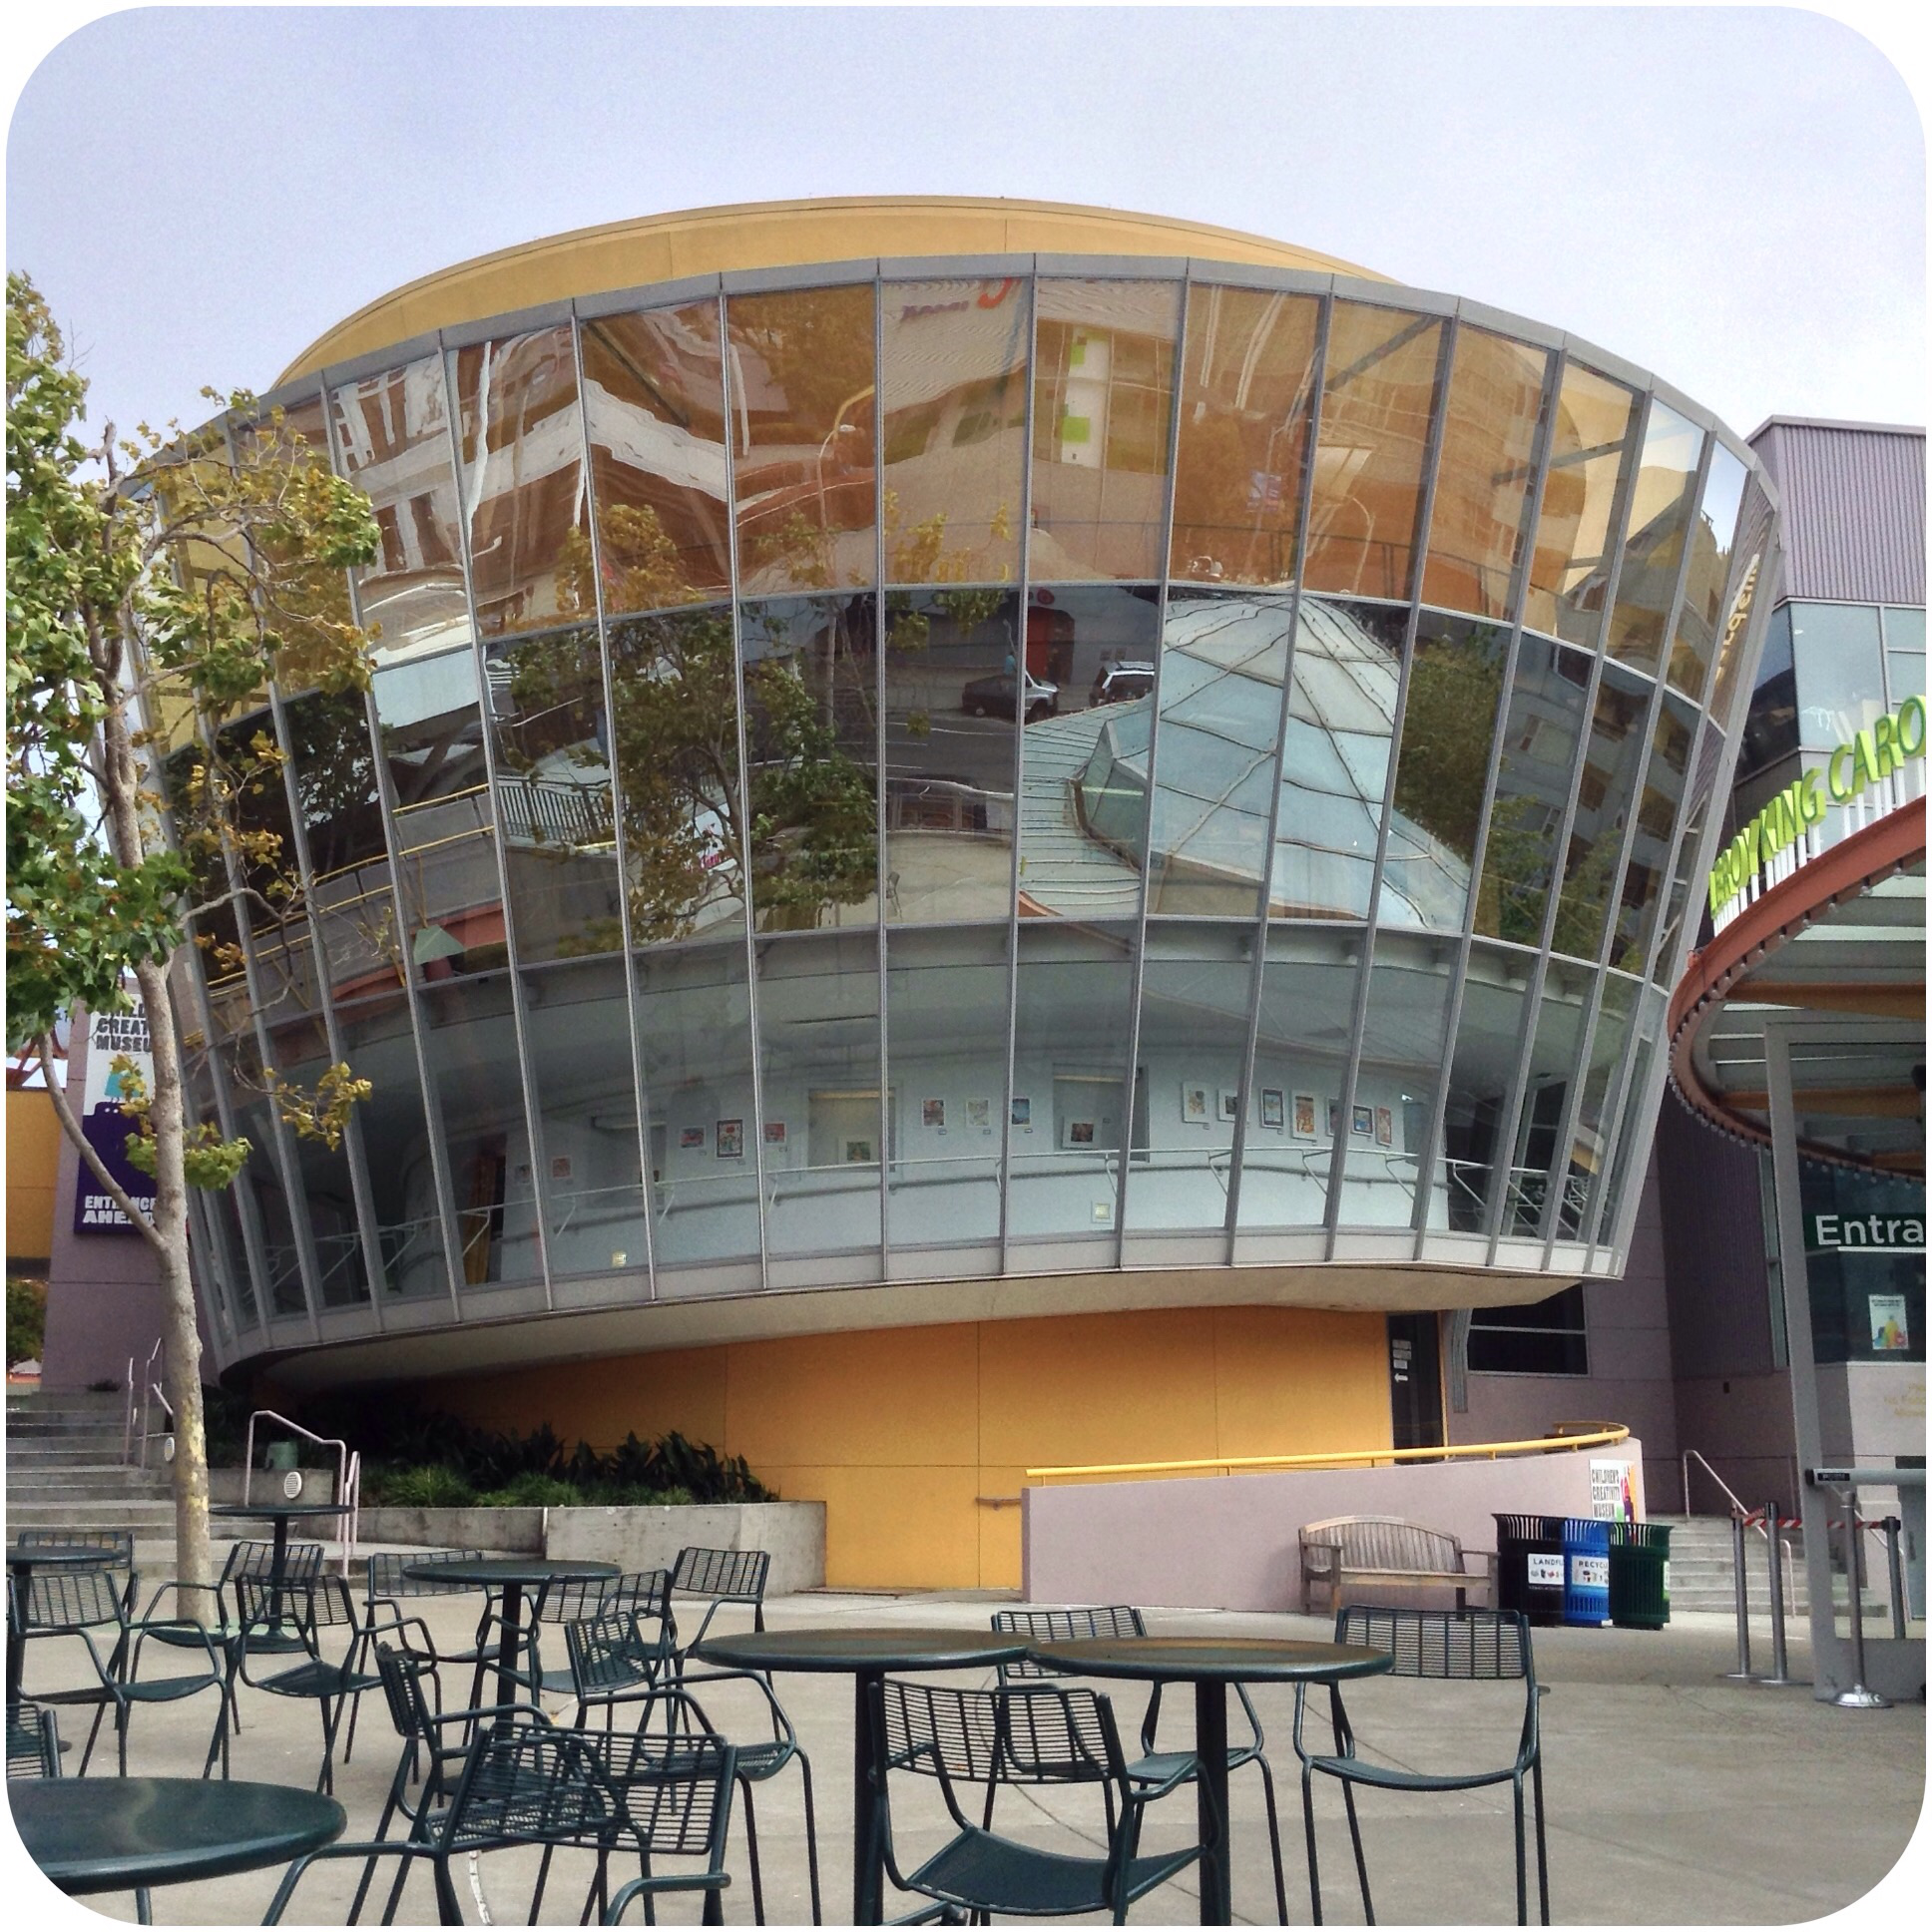 Children's Creativity Museum, Yerba Buena Gardens, San Francisco, California